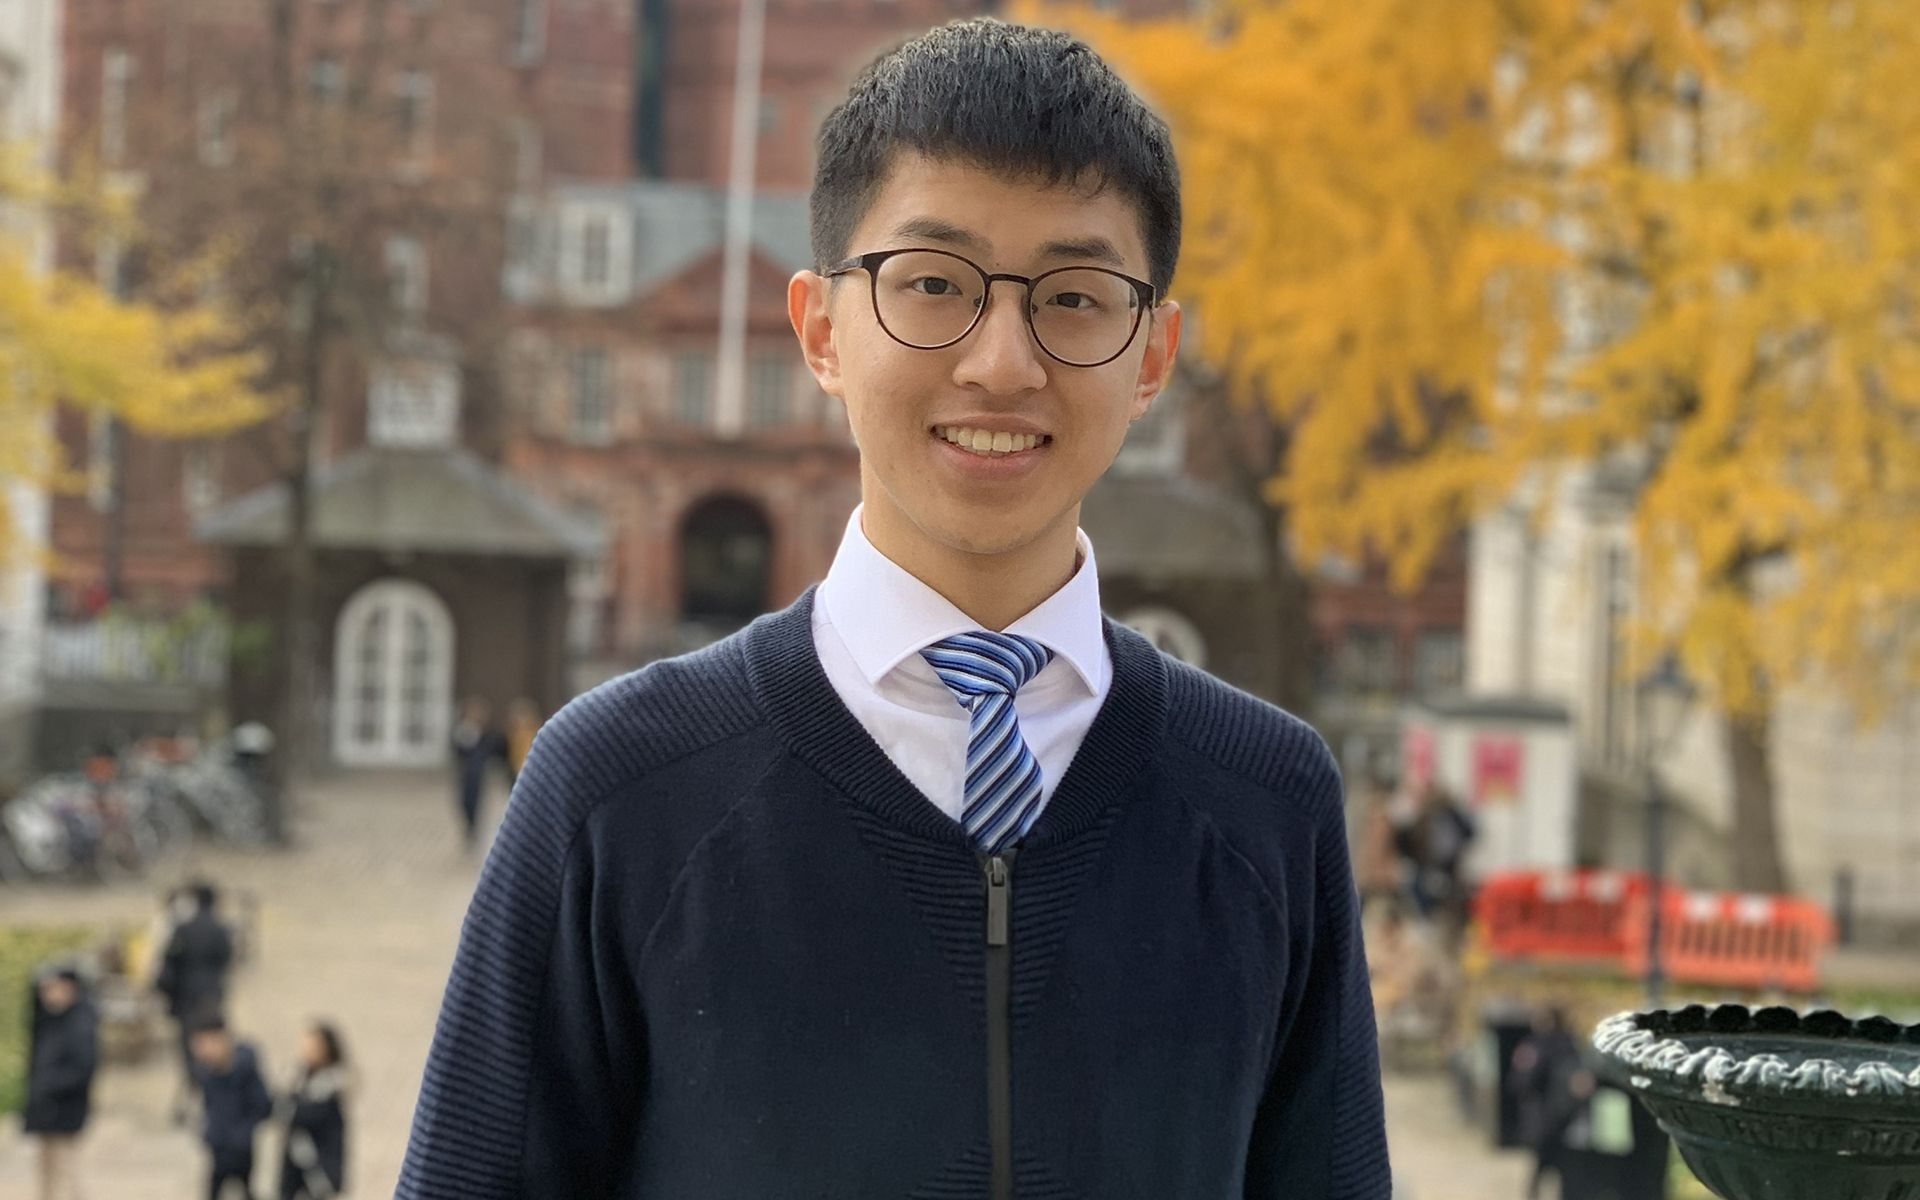 Tan Chee Yong founded The Hubb Movement as a King's College International Relations student (Photo credit: Tan Chee Yong)